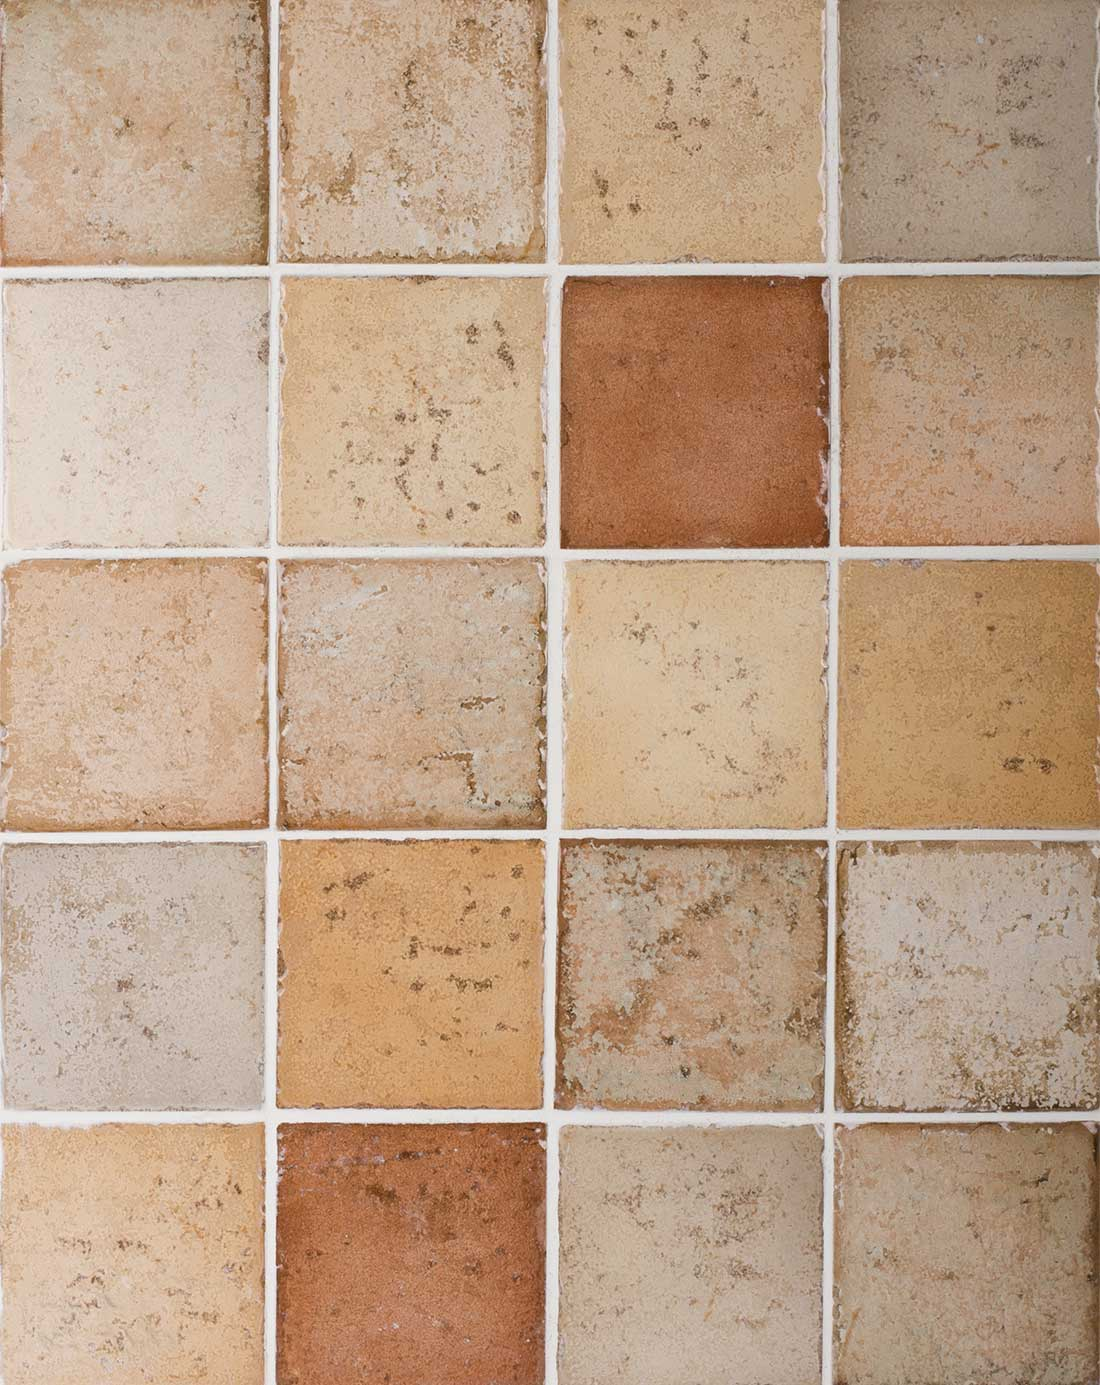 Kitchen floor tile samples china suppliers ceramic kitchen for Kitchen samples